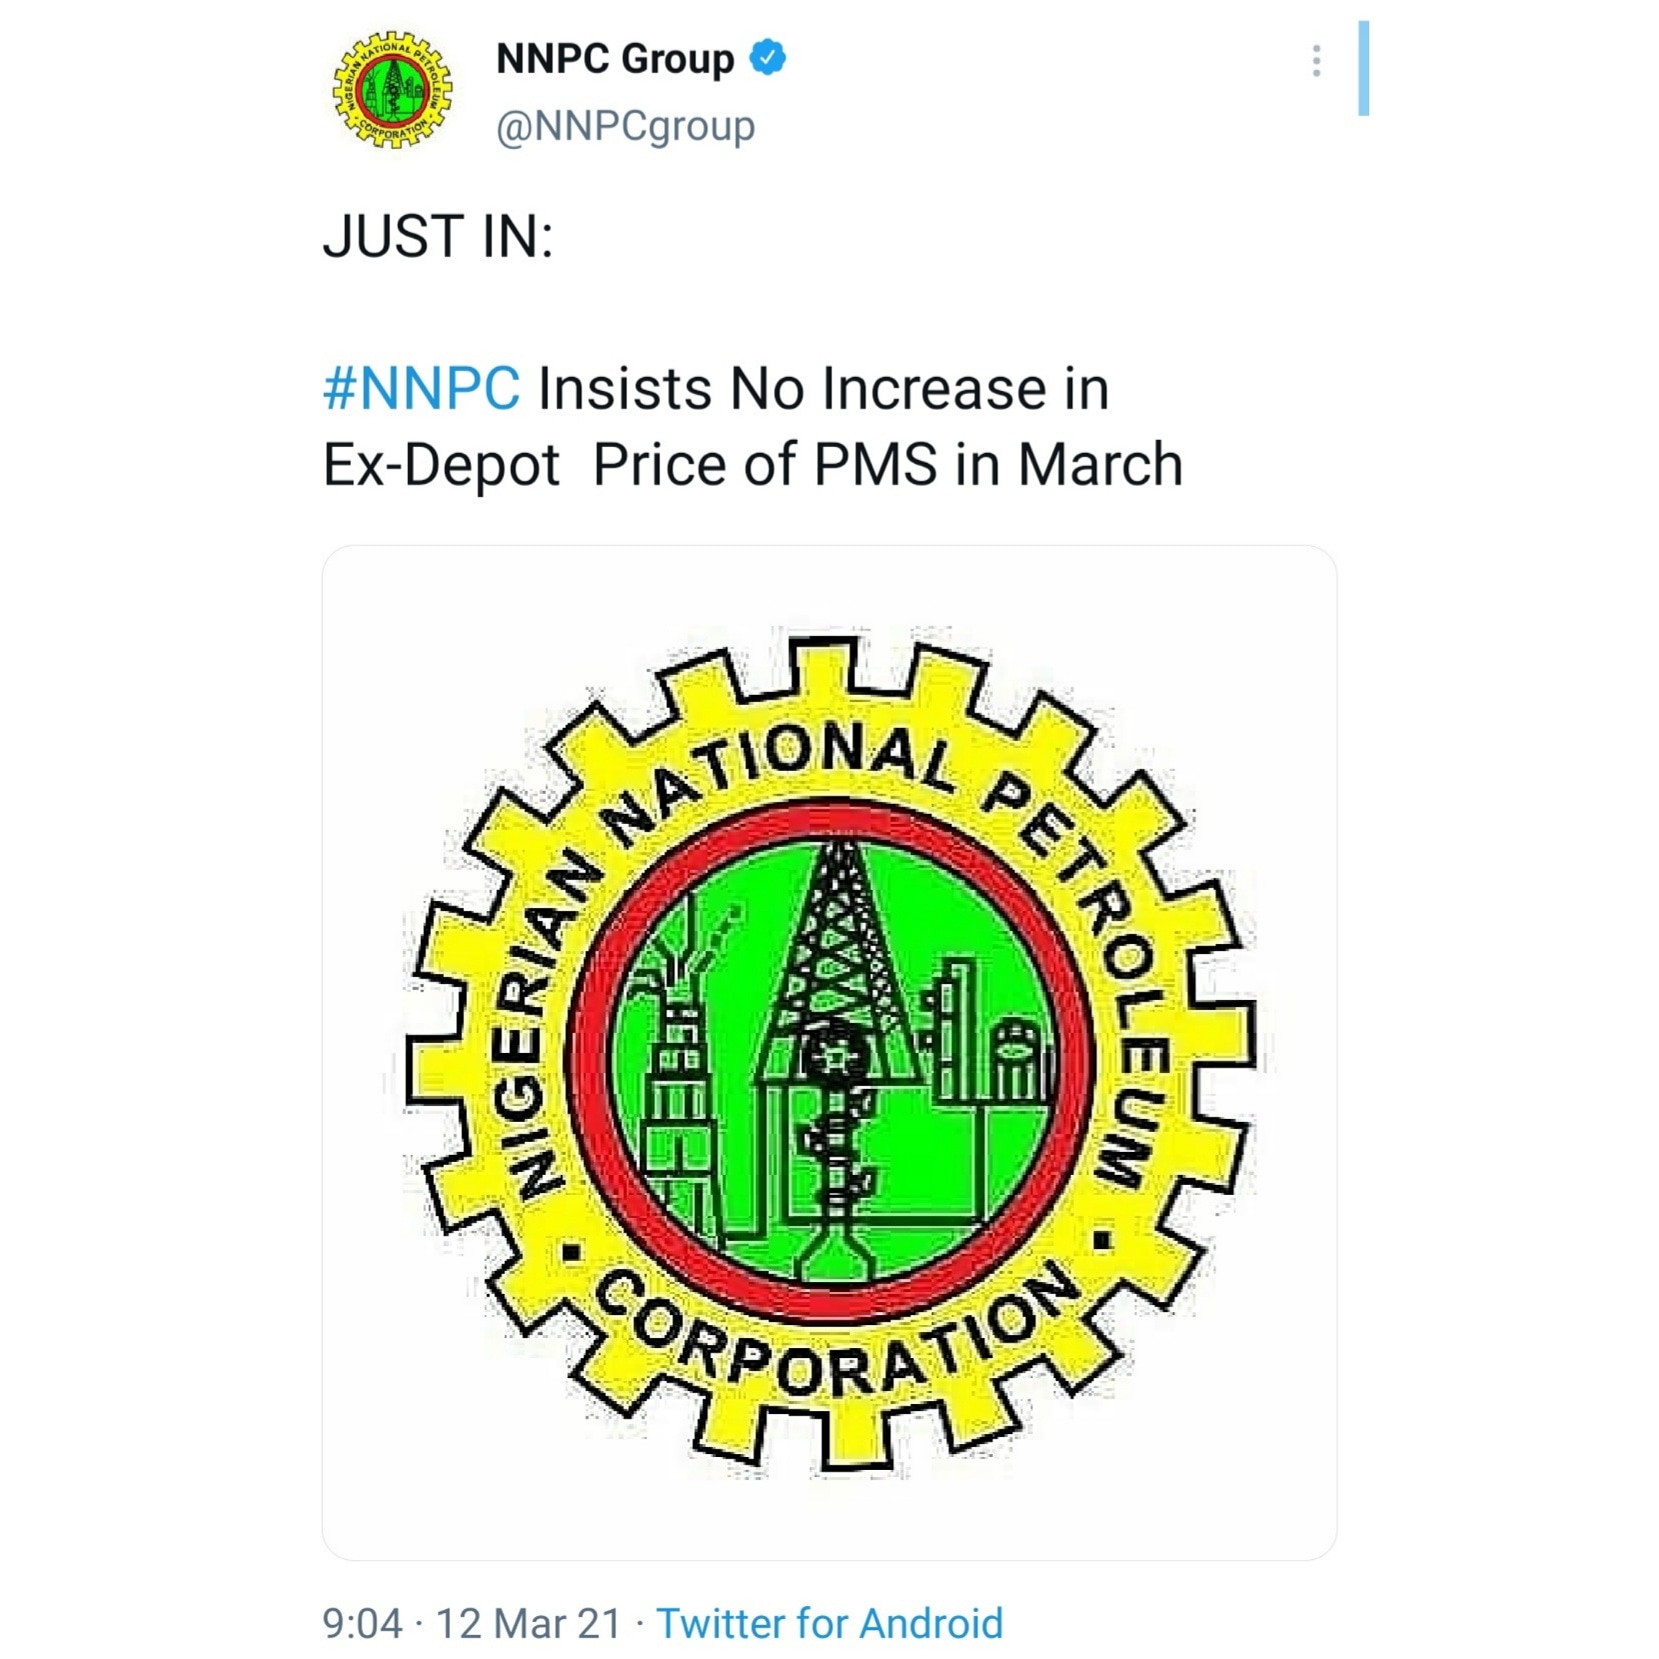 NNPC insists no increase in ex-depot price of PMS in March